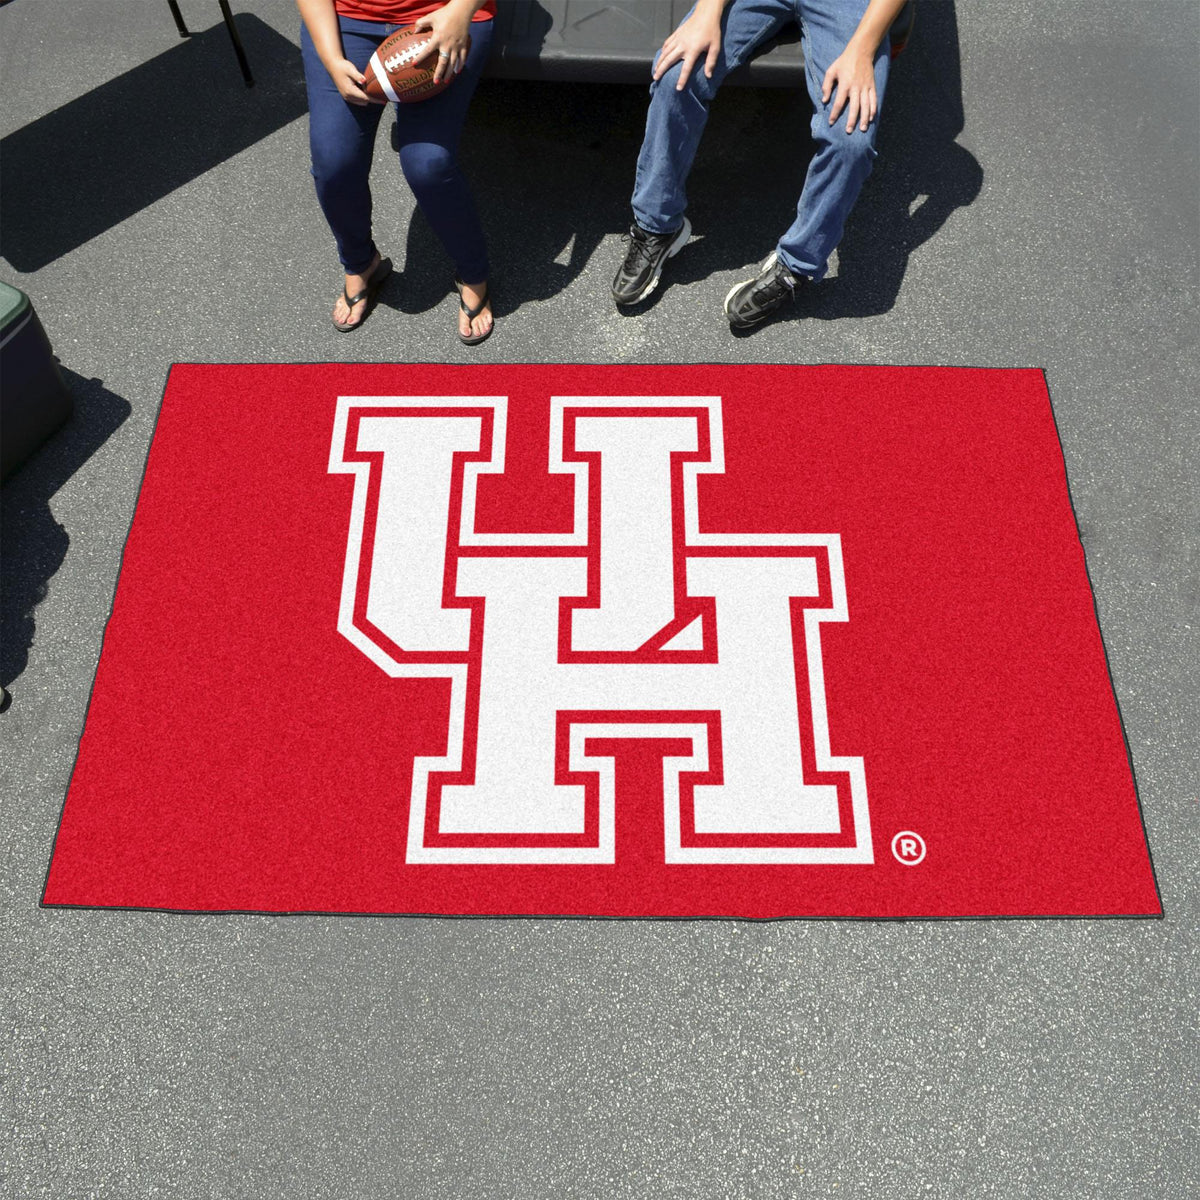 Collegiate - Ulti-Mat: A - L Collegiate Mats, Rectangular Mats, Ulti-Mat, Collegiate, Home Fan Mats Houston